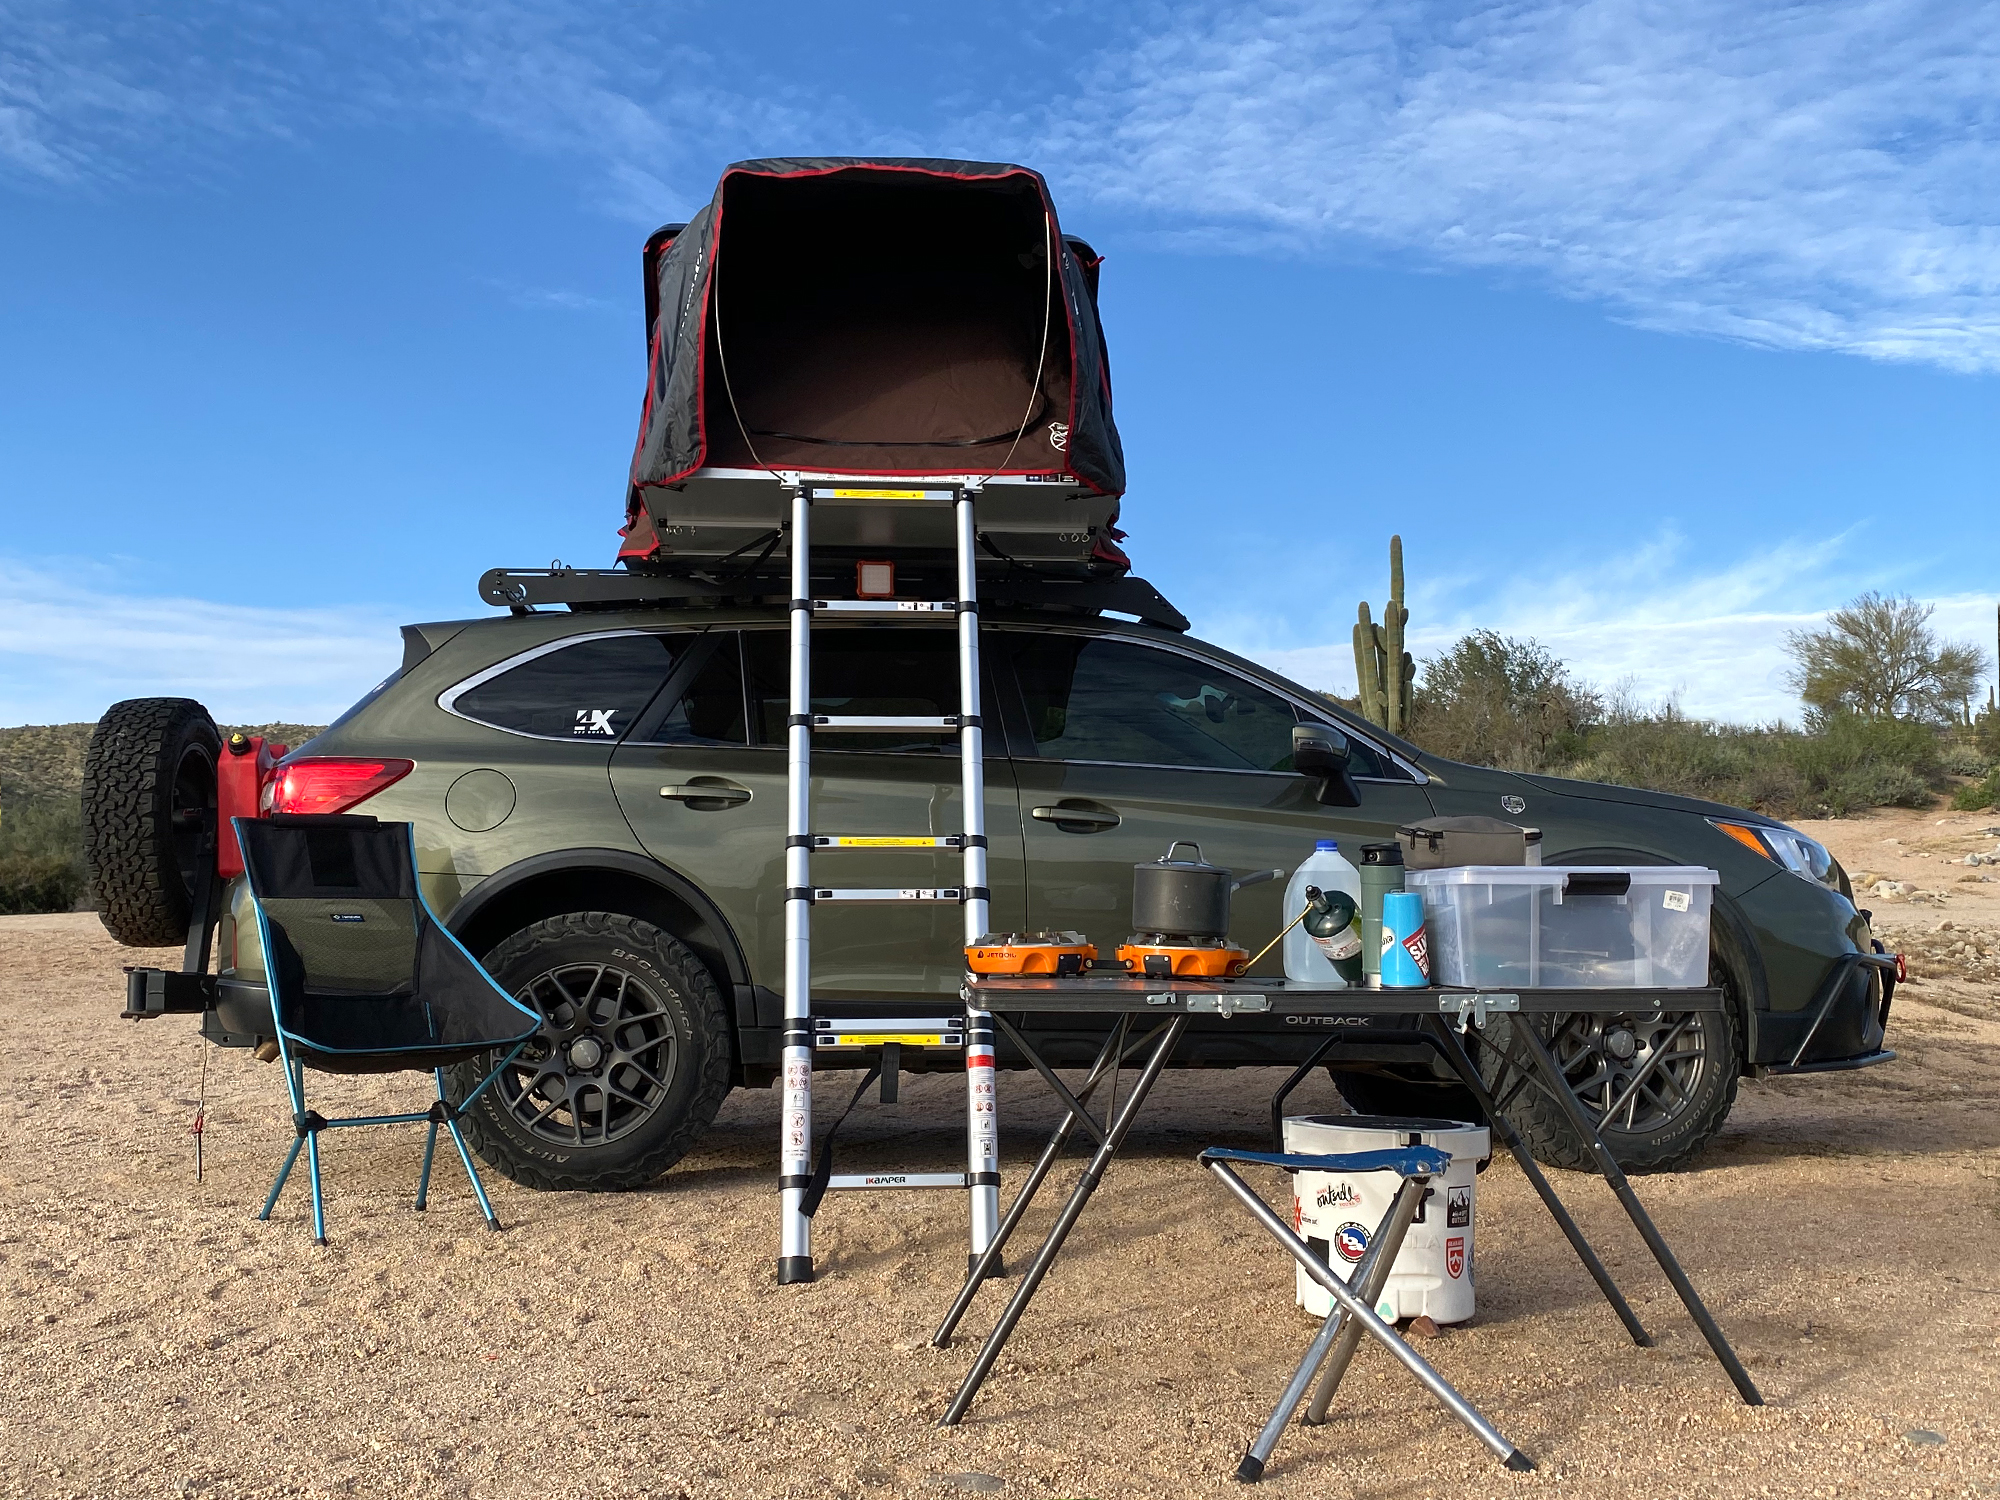 4xpedition Subaru Outback iKamper Skycamp Mini